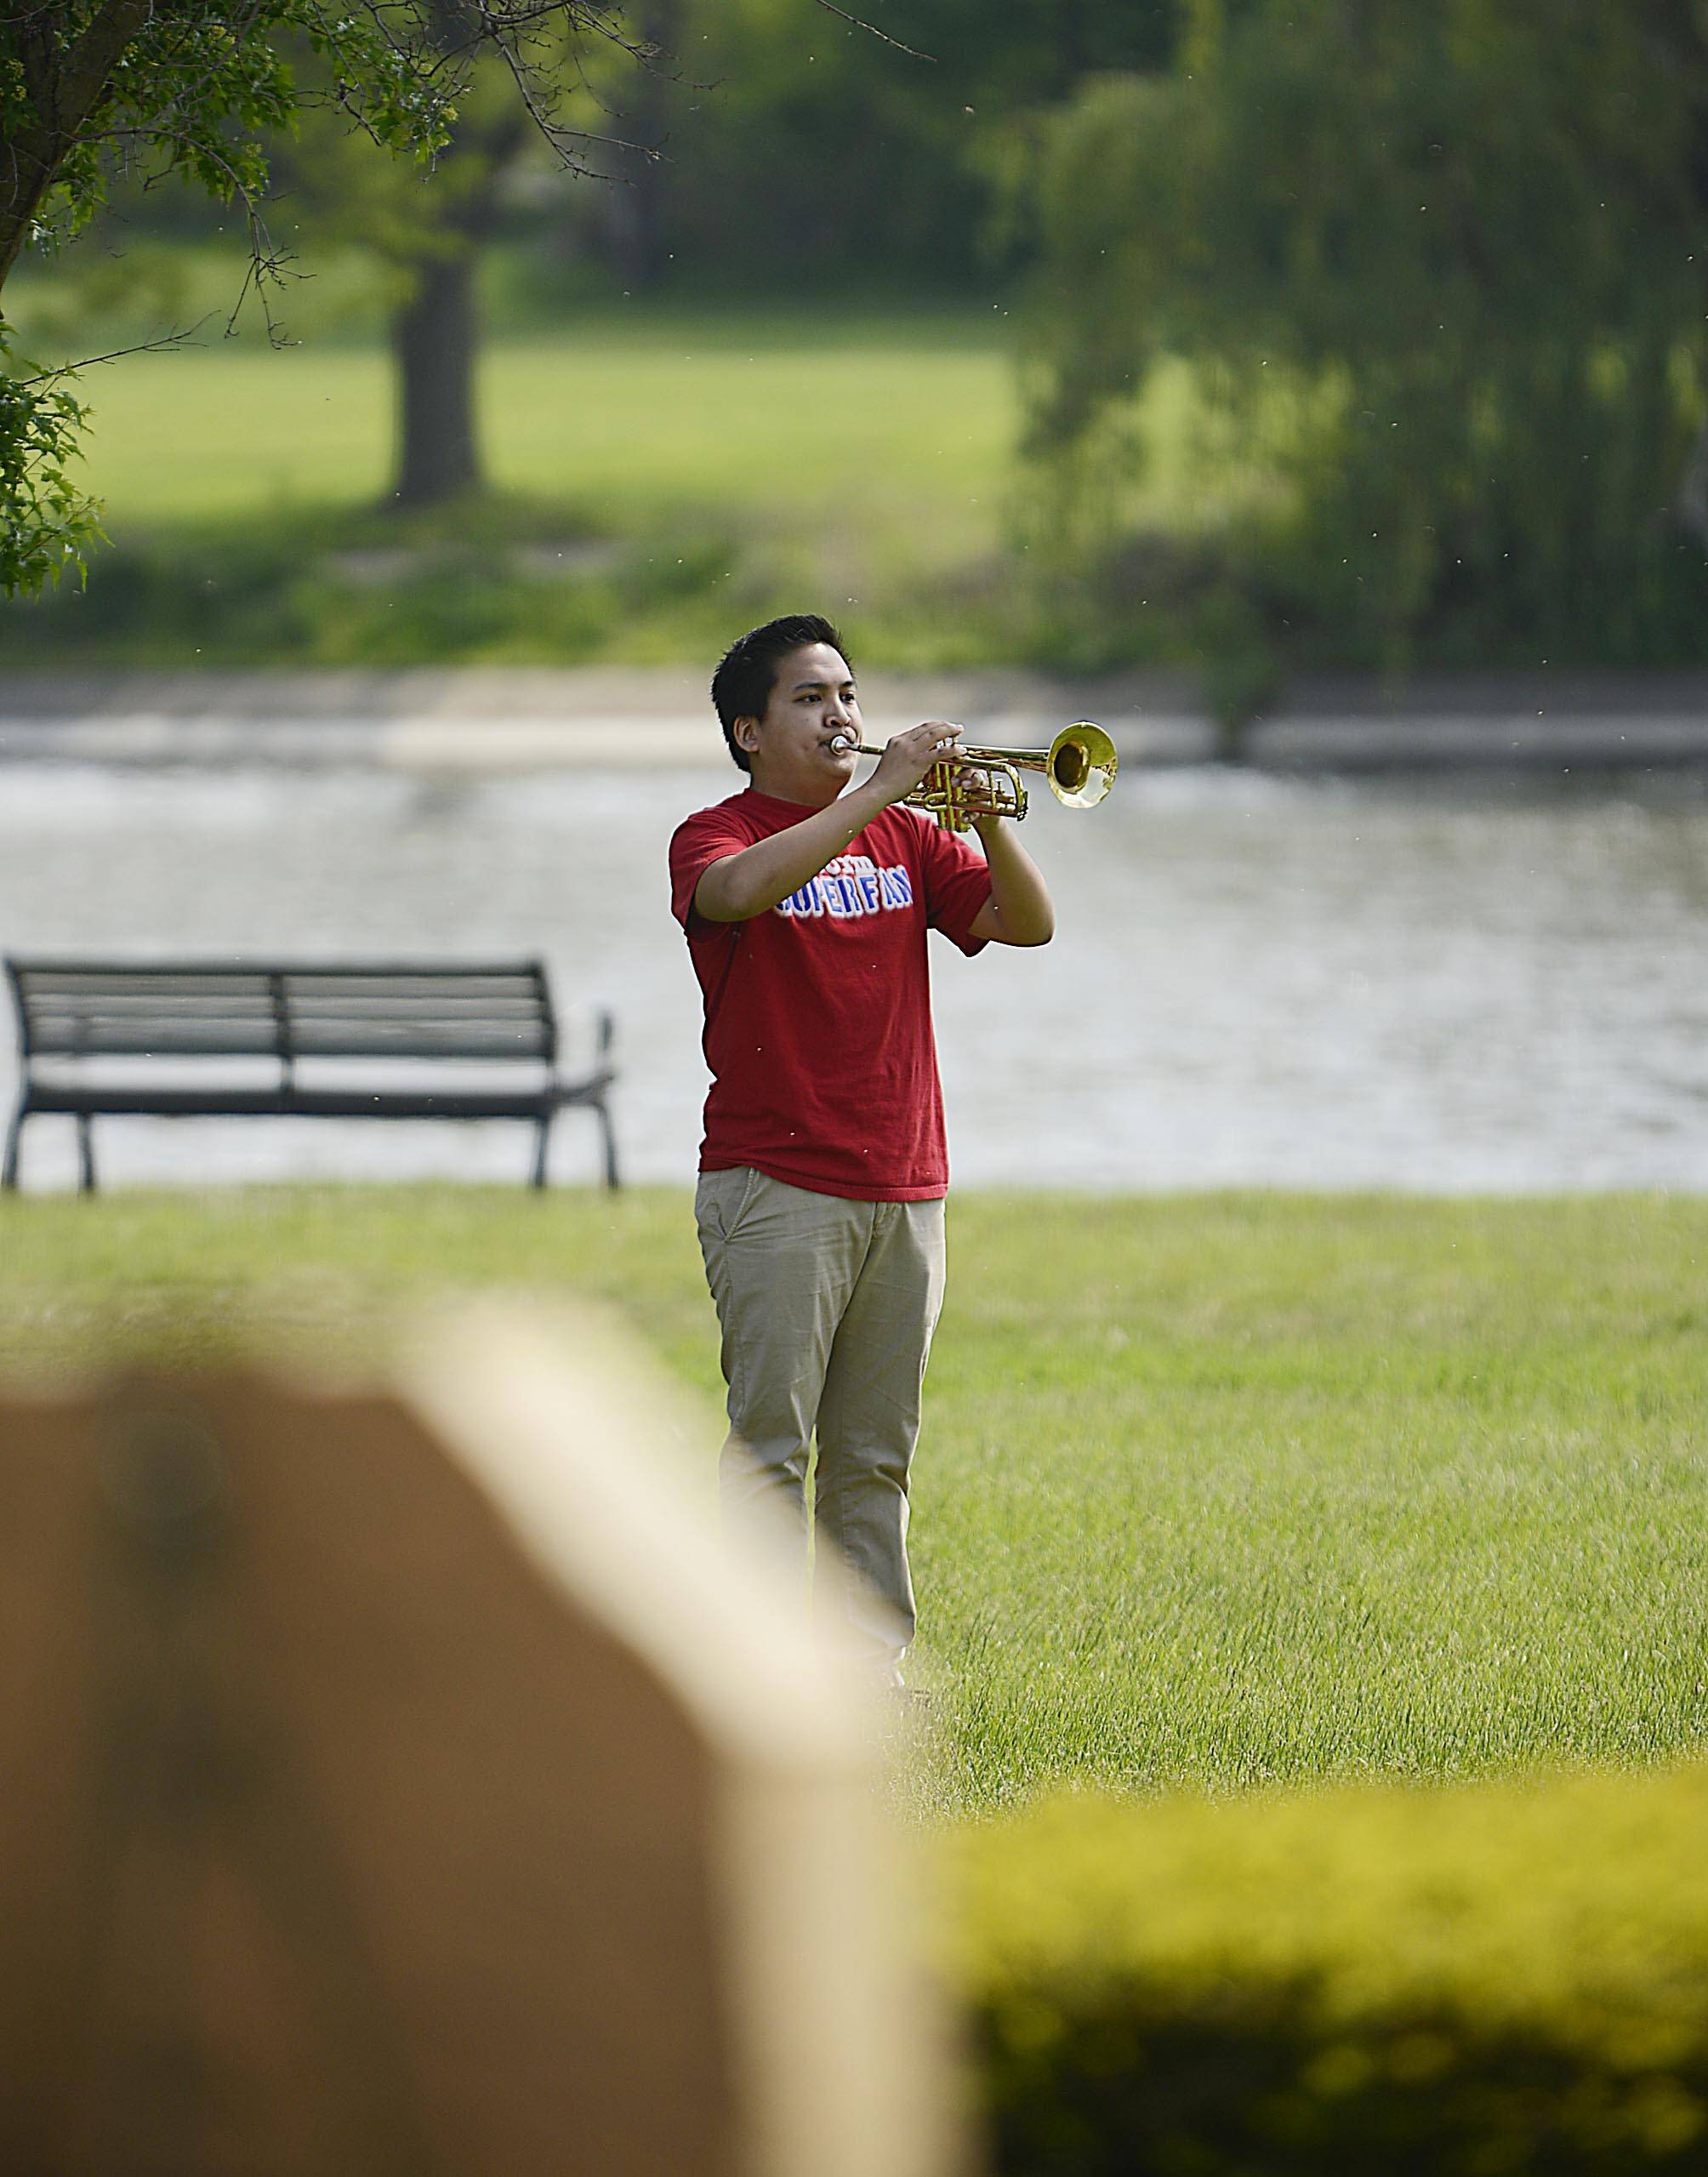 Ian Dela Merced, a senior at South Elgin High School, plays Taps to close the South Elgin Memorial Day event at Panton Mill Park Monday.